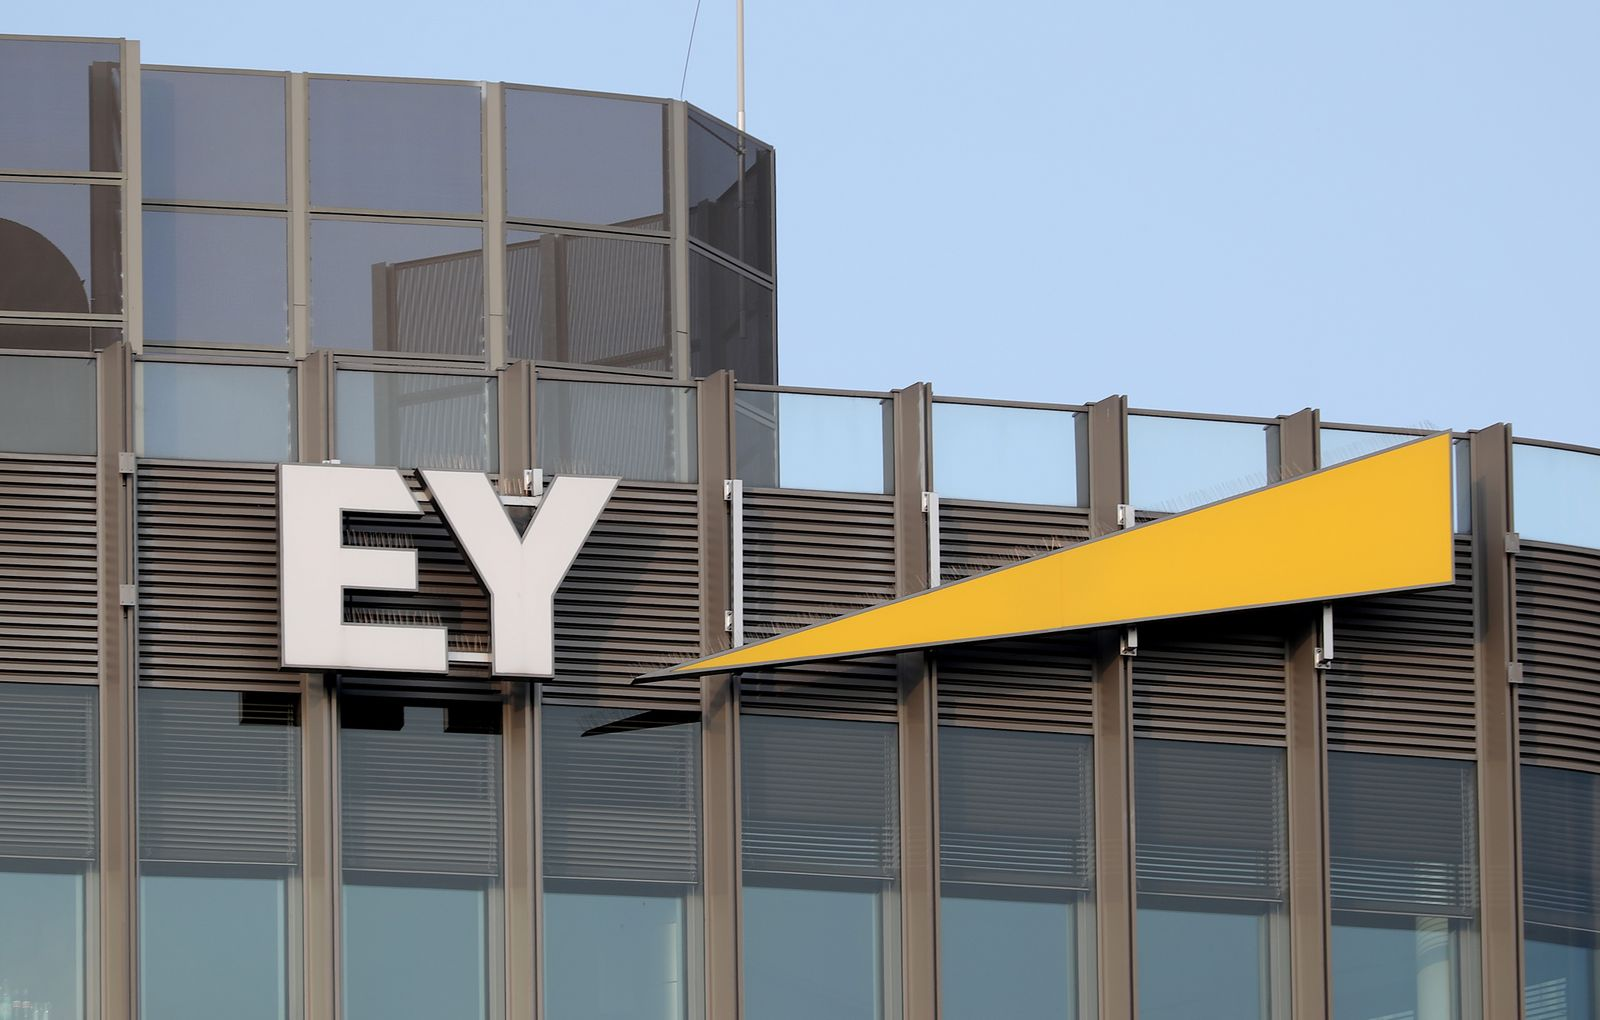 EY faces lawsuits and business losses, Berlin, Germany - 25 Jun 2020